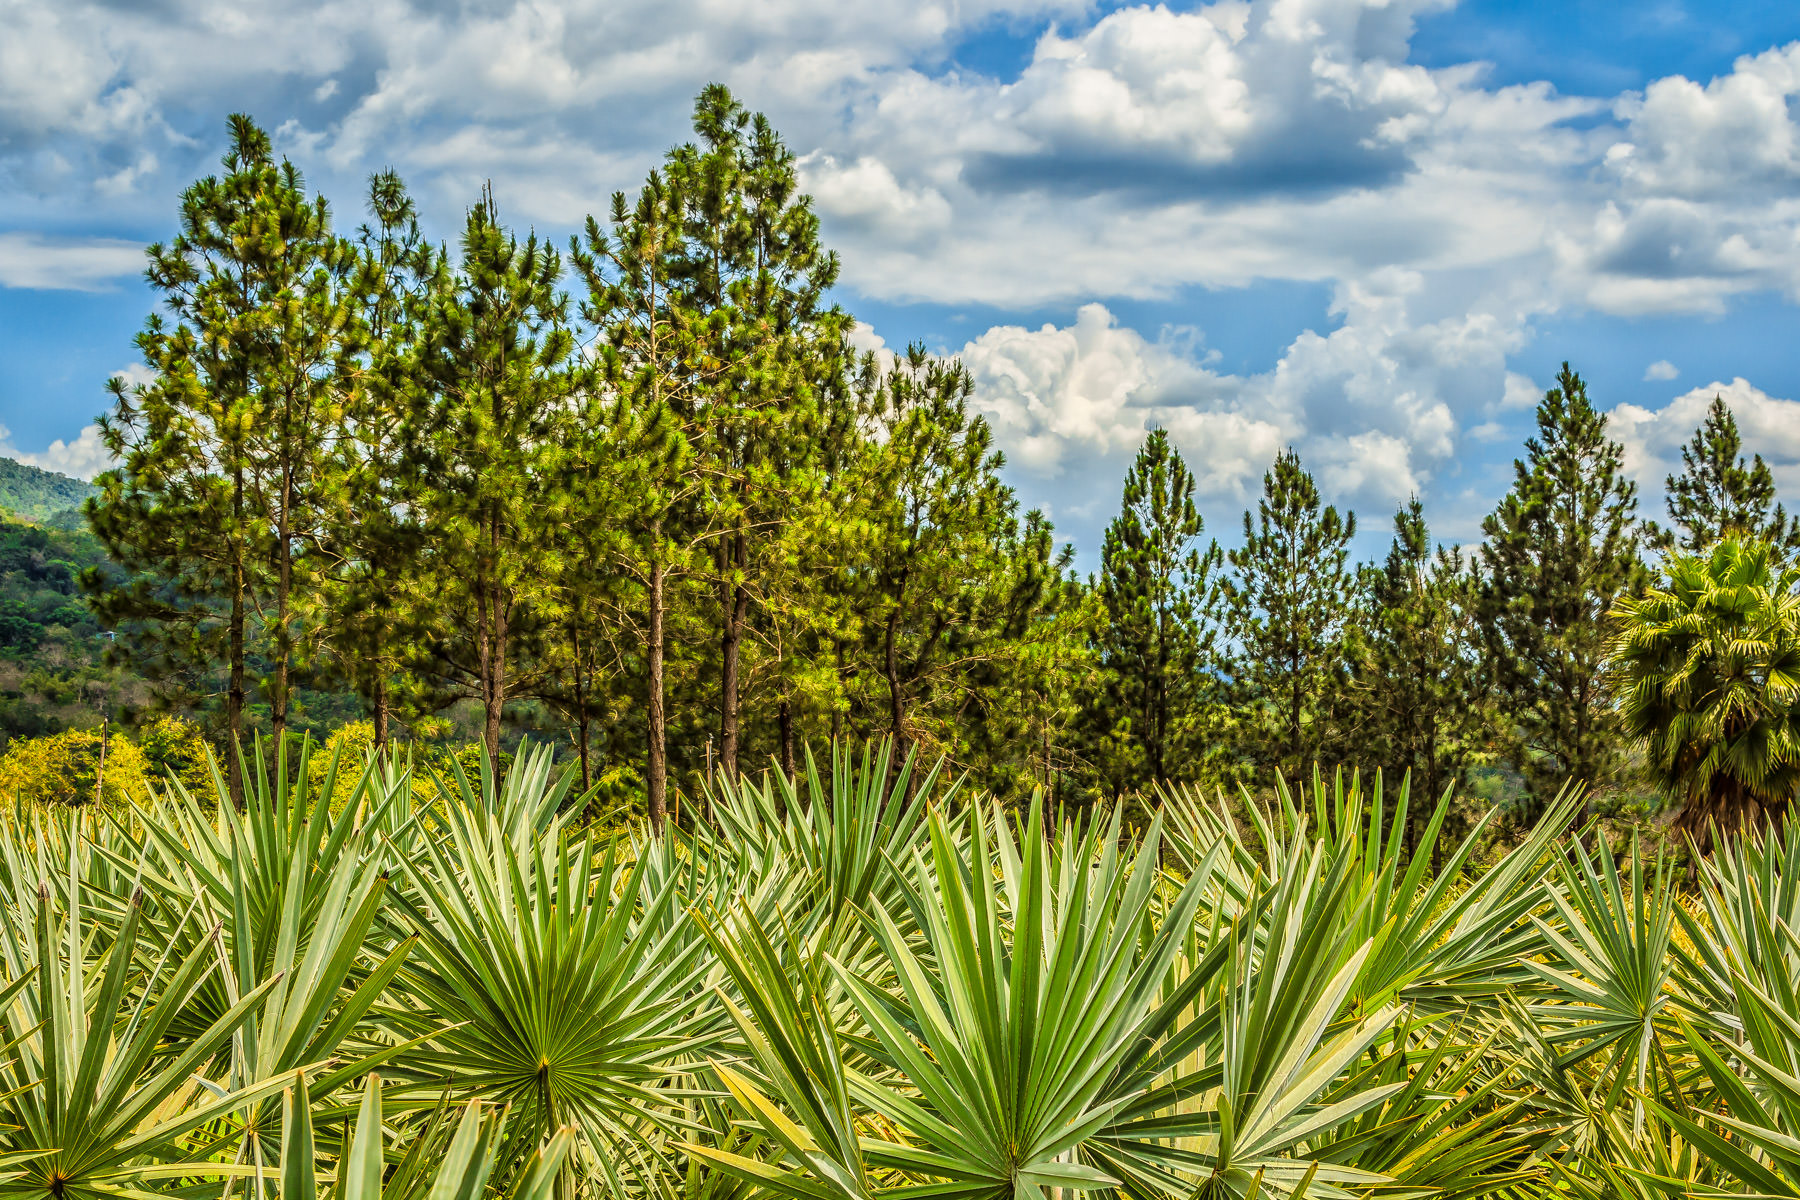 Palm trees and pine trees grow at the Croydon in the Mountains plantation in Jamaica's northwest.